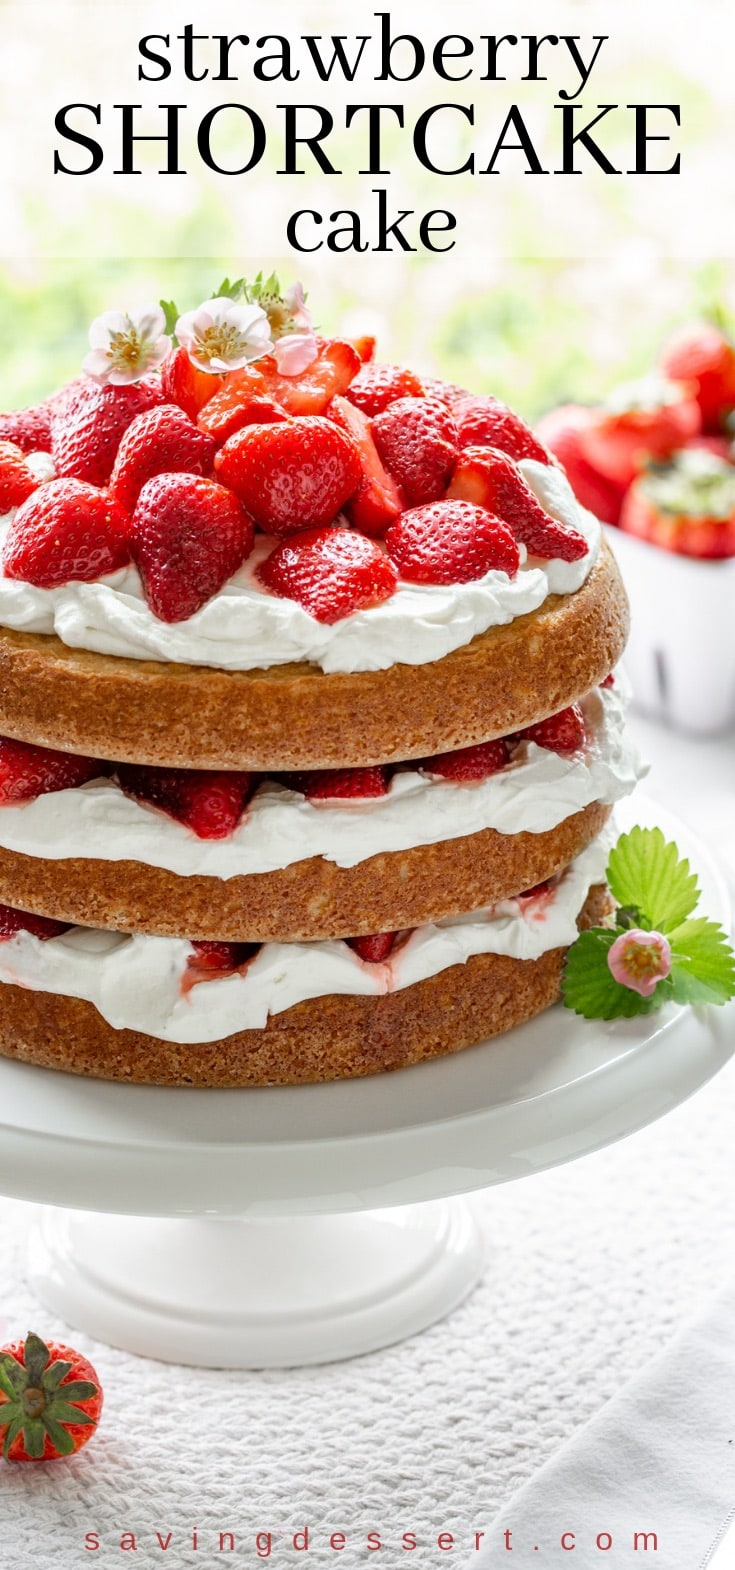 A three layer Strawberry Shortcake Cake piled high with fresh strawberries and topped with strawberry blossoms